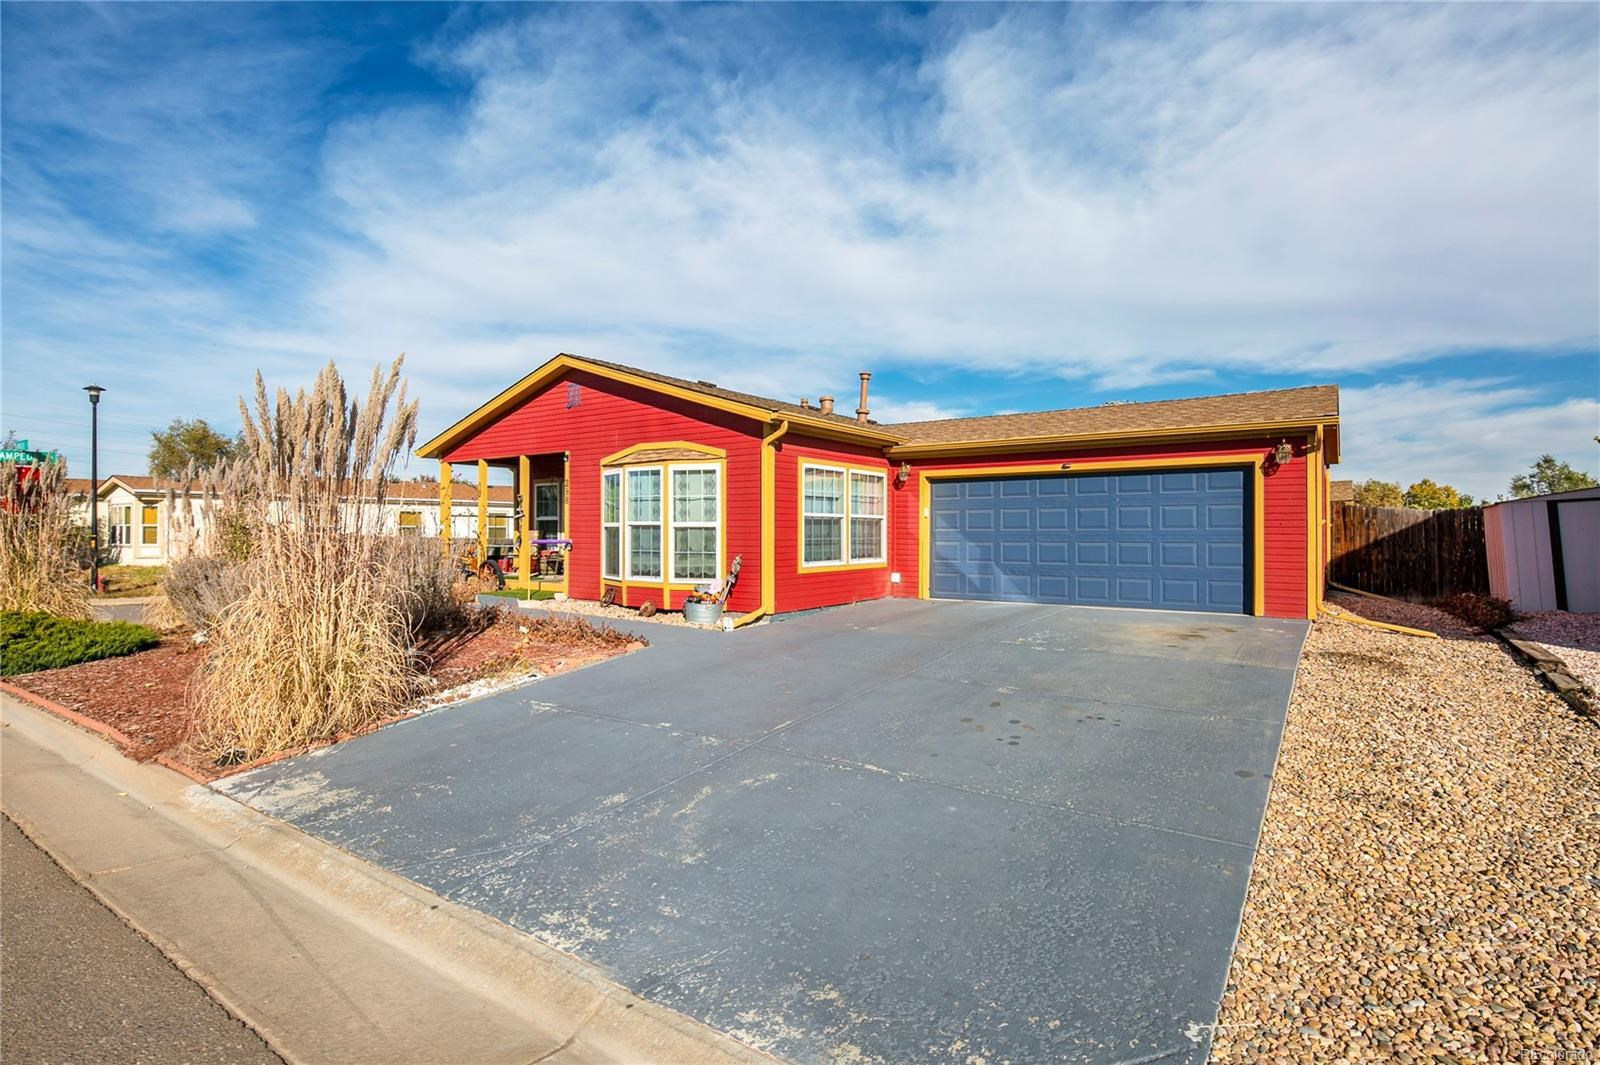 MLS# 5700452 - 3 - 298 Apache Place, Lochbuie, CO 80603